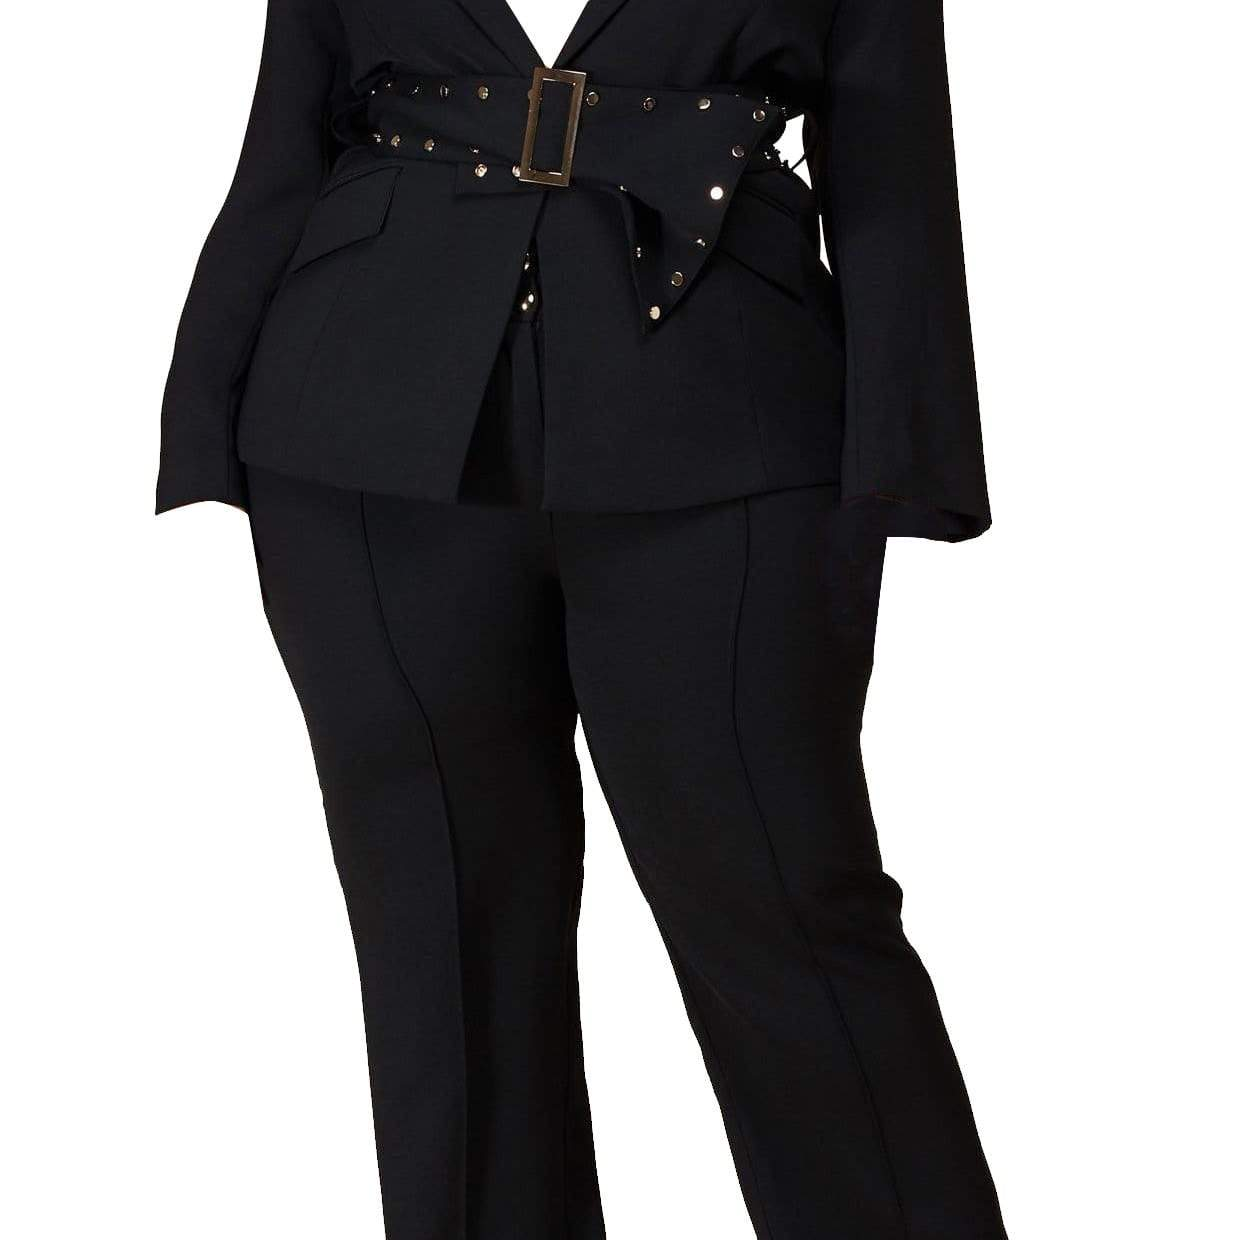 Black Blazer Pant Set - Posh Shoppe